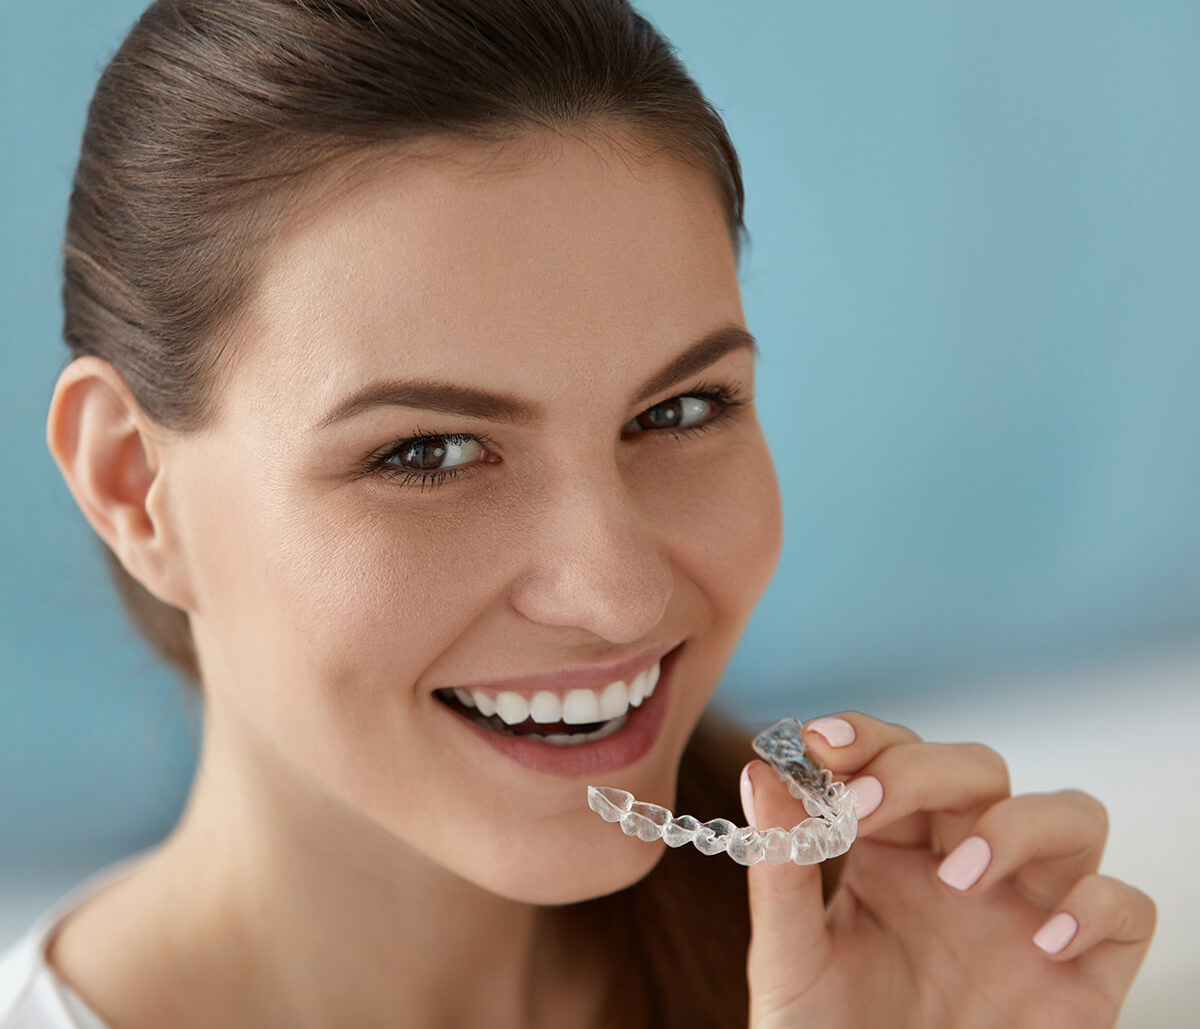 Invisible Braces at Pines Dental Associates in Pembroke Pines FL Area